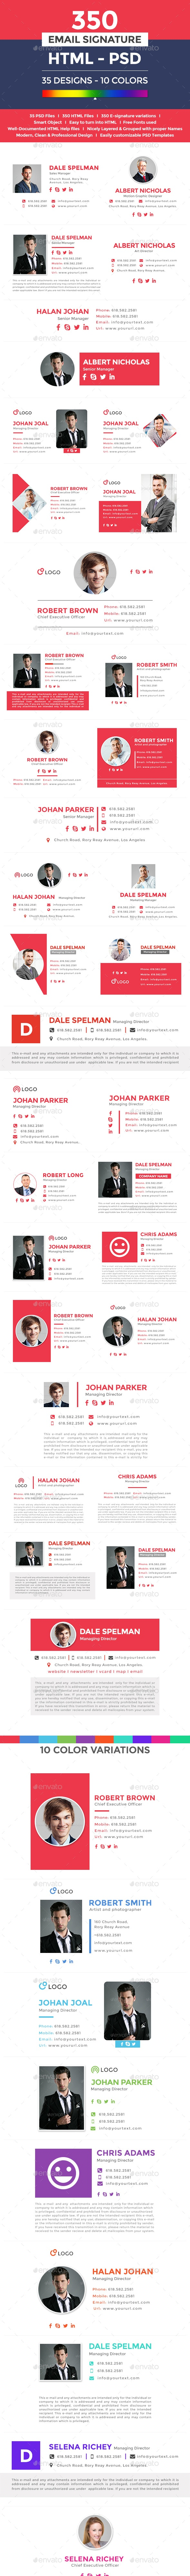 350 Email Signature Templates - HTML Files Included - Miscellaneous Social Media